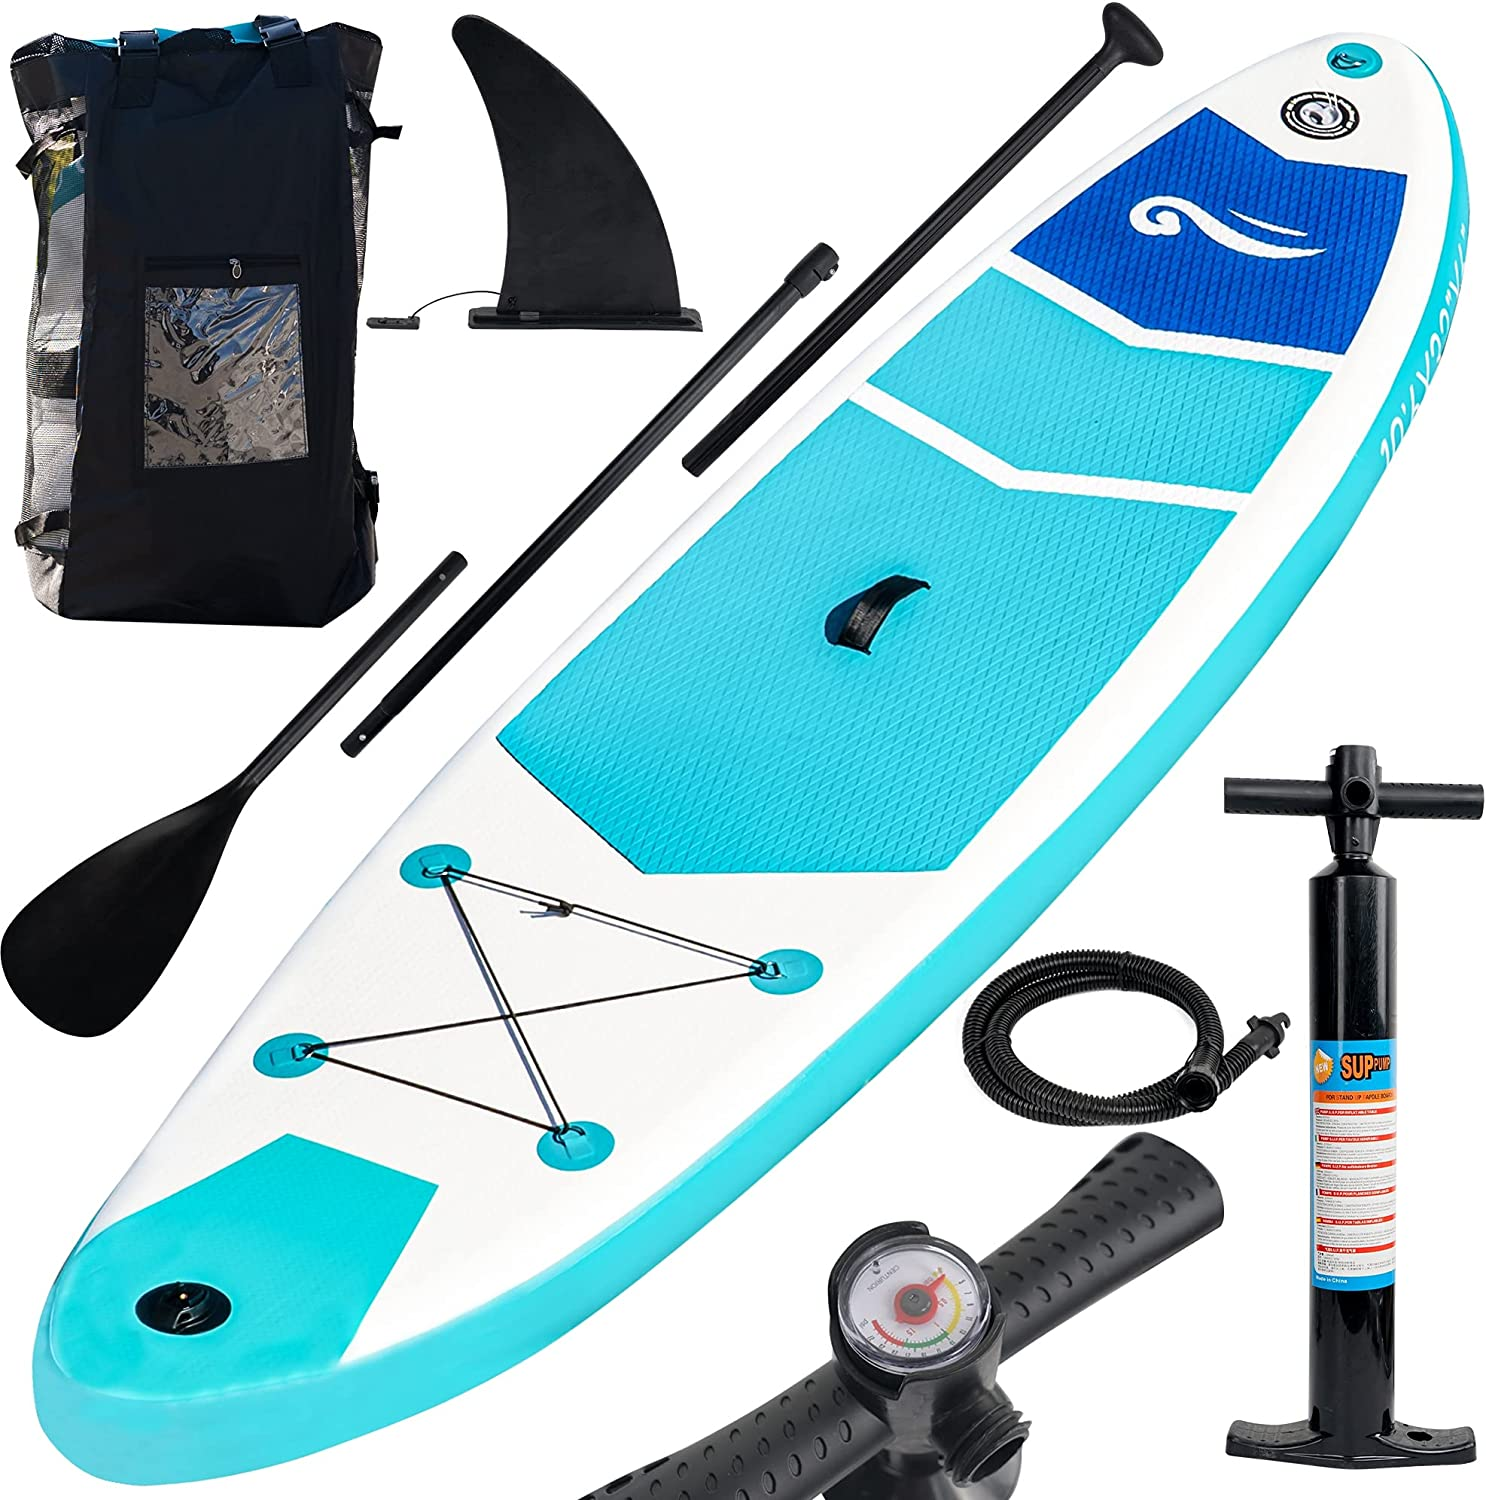 FUNPENY Max 82% OFF Inflatable Stand Los Angeles Mall Up Paddle Boards Non-Sl 32